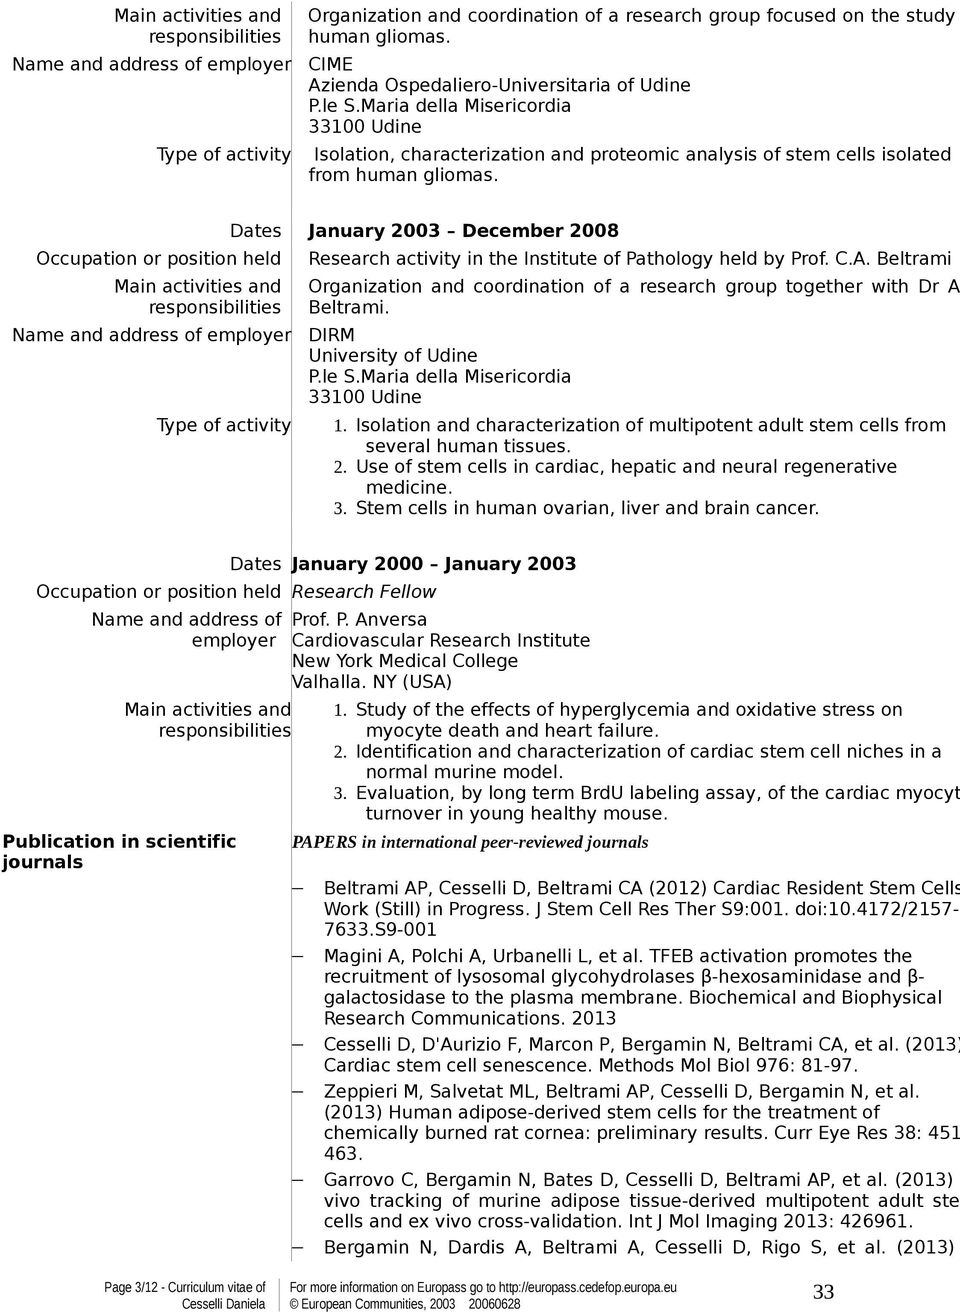 Occupation or position held Main activities and Name and address of employer Type of activity Dates January 2003 December 2008 Research activity in the Institute of Pathology held by Prof. C.A.